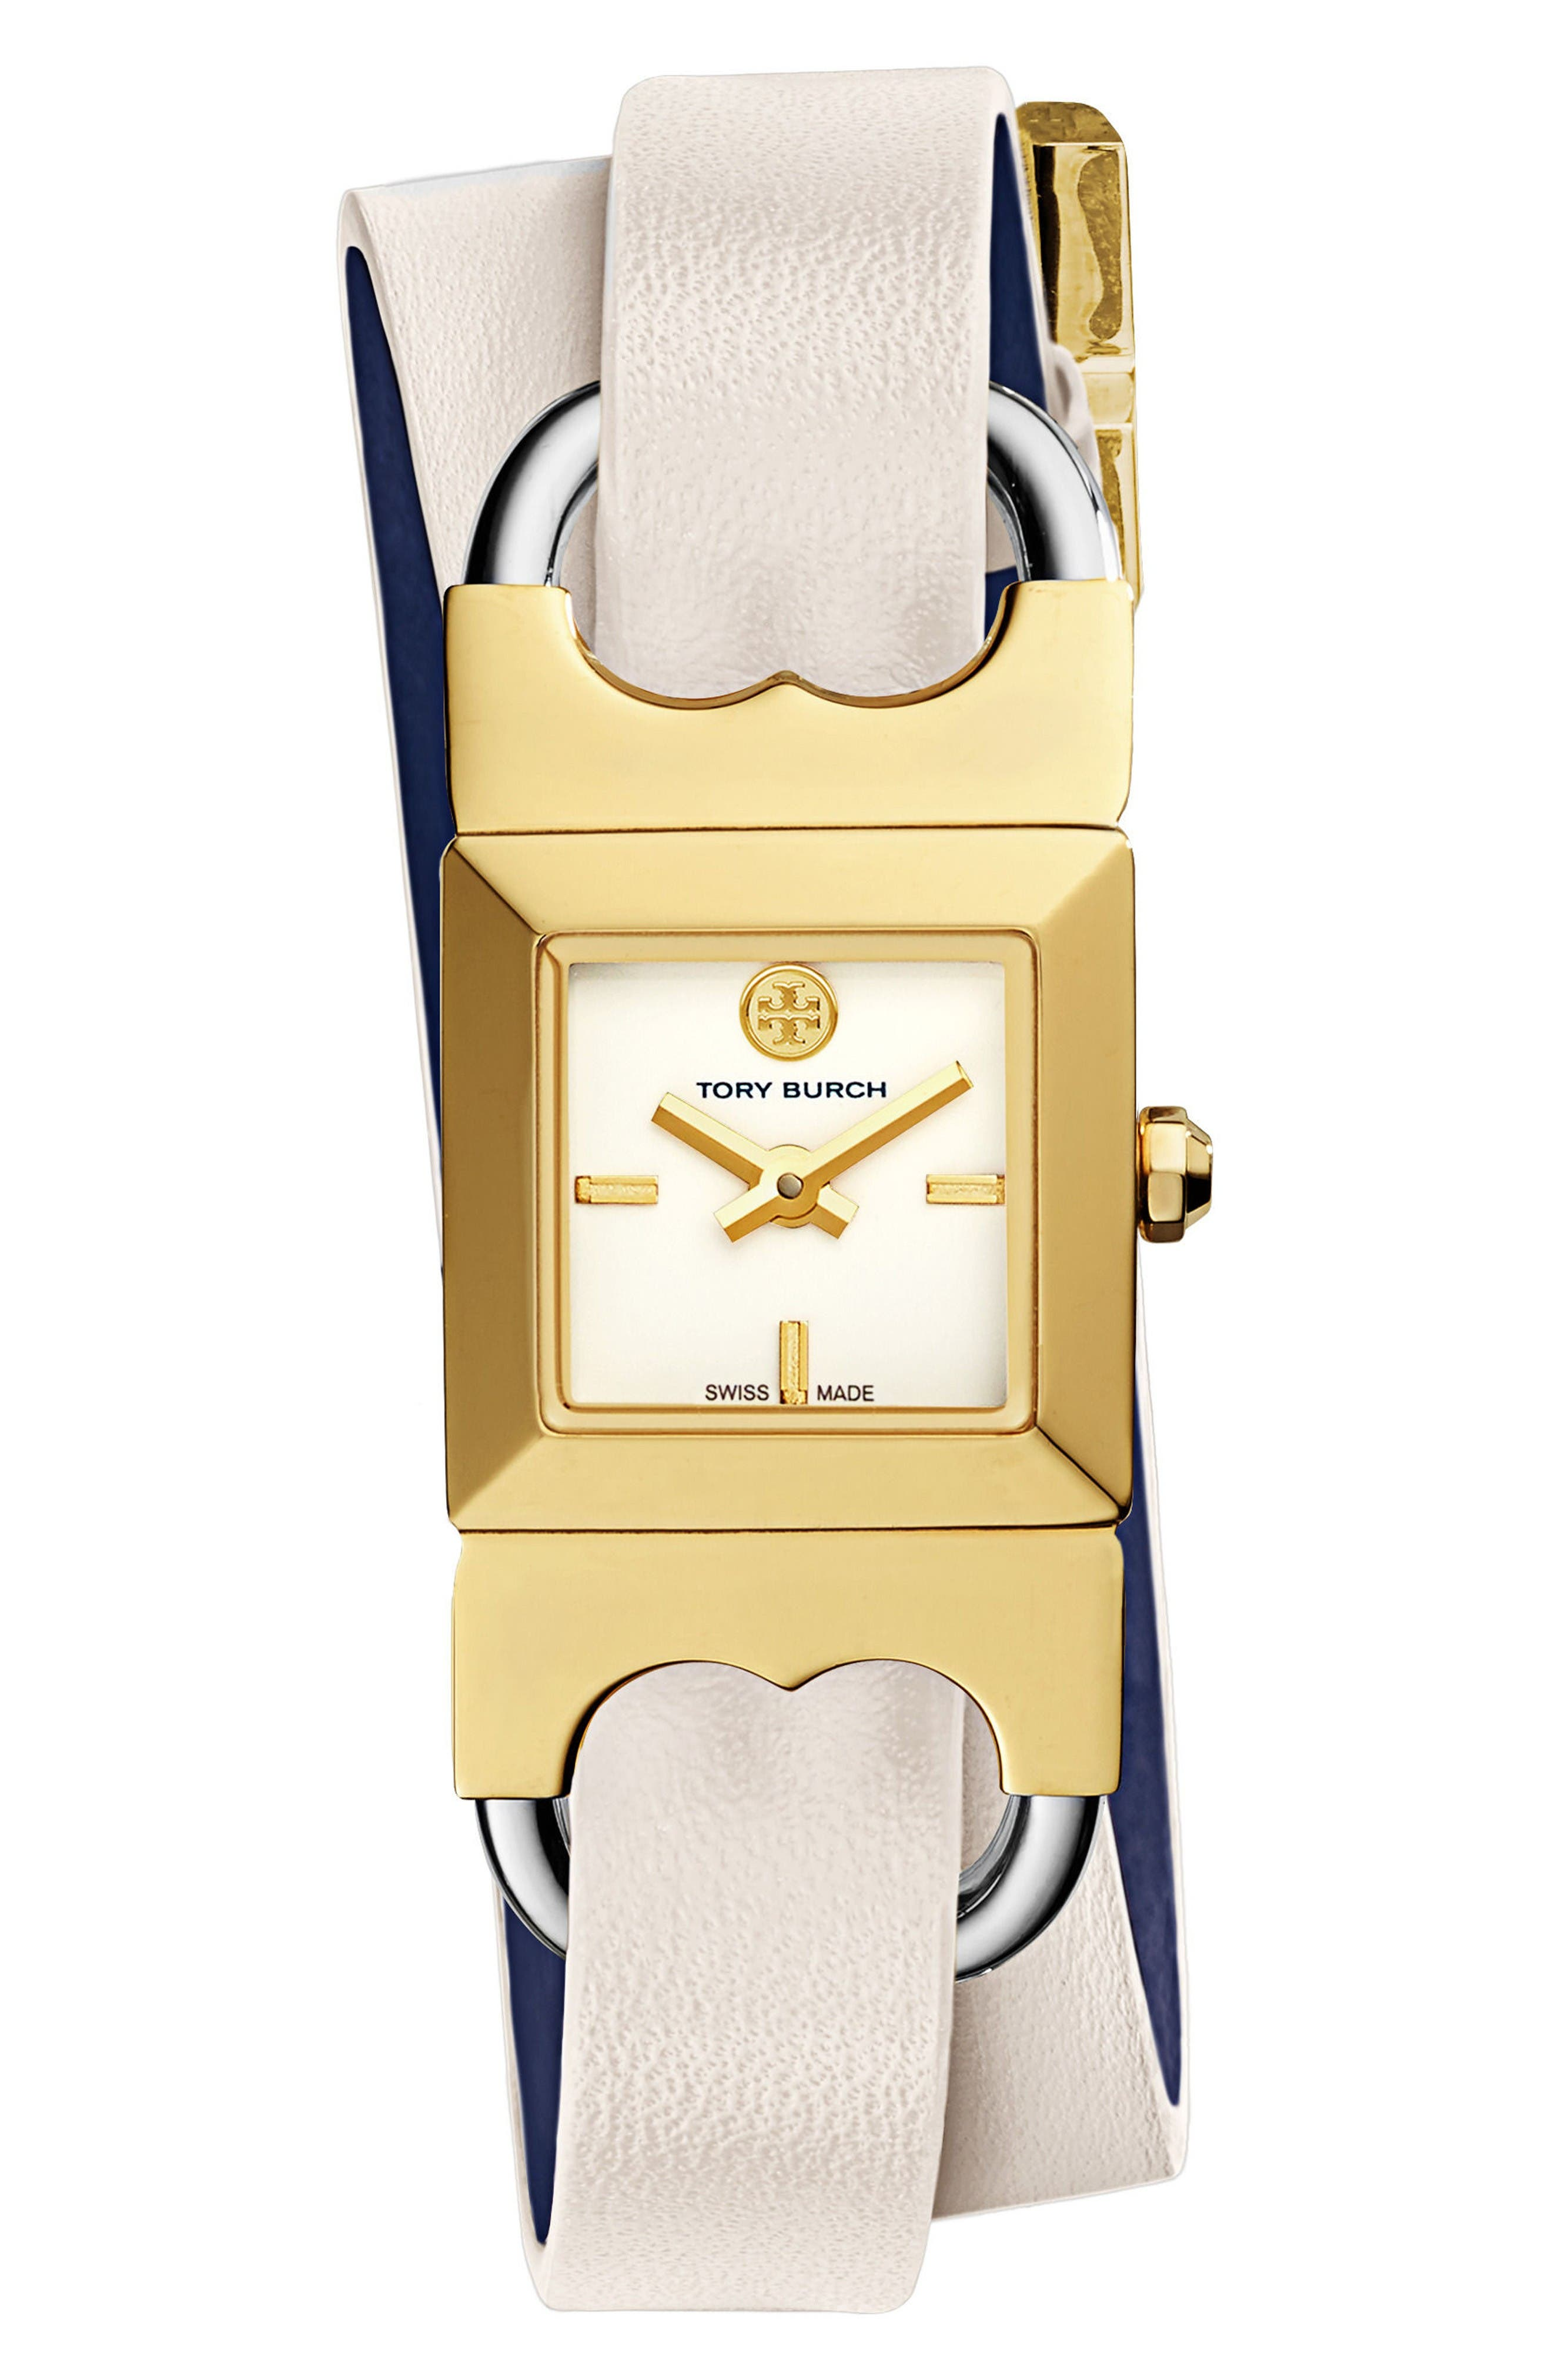 Main Image - Tory Burch Double T Link Reversible Wrap Leather Strap Watch, 19mm x 23mm